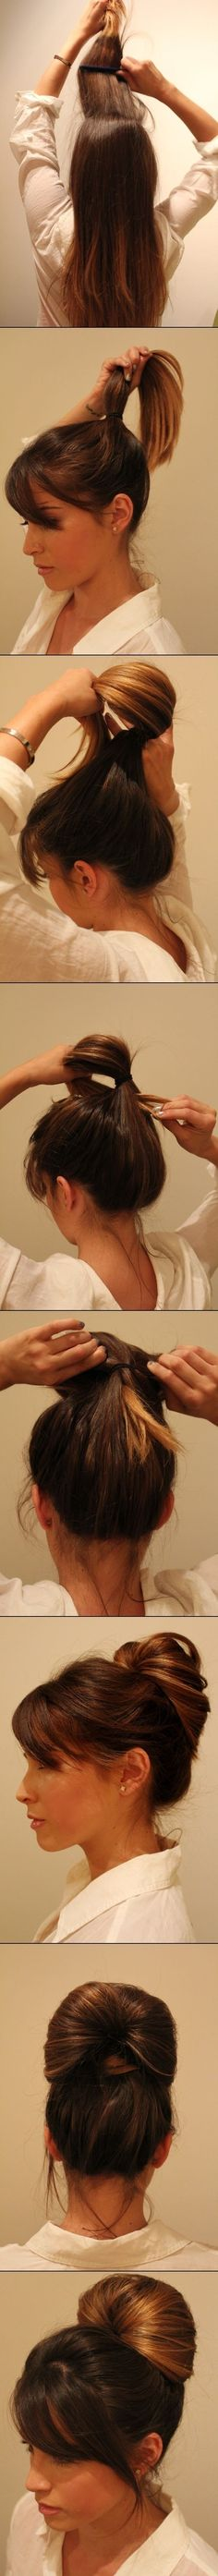 Hairstyles for girls in a hurry